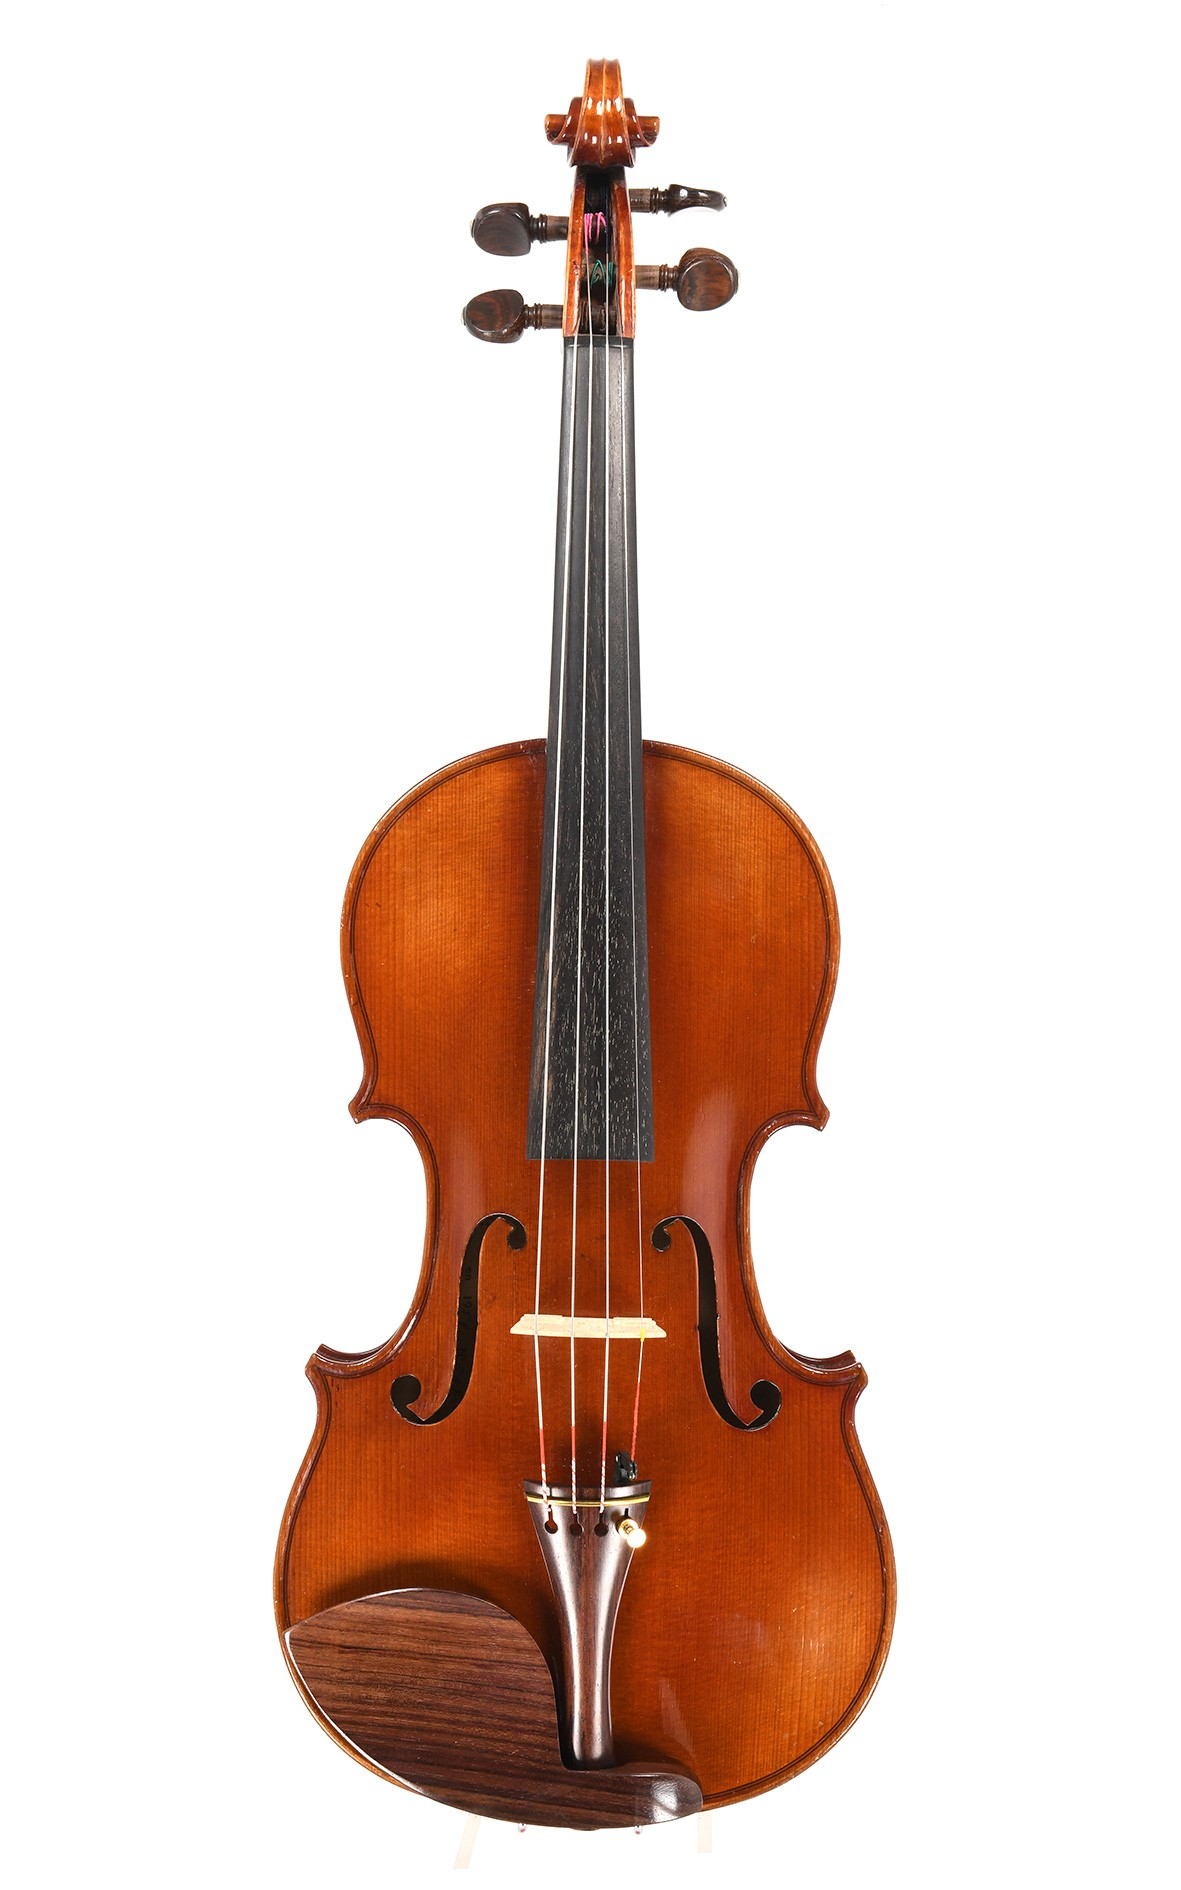 Paul Hilaire violin from Mirecourt